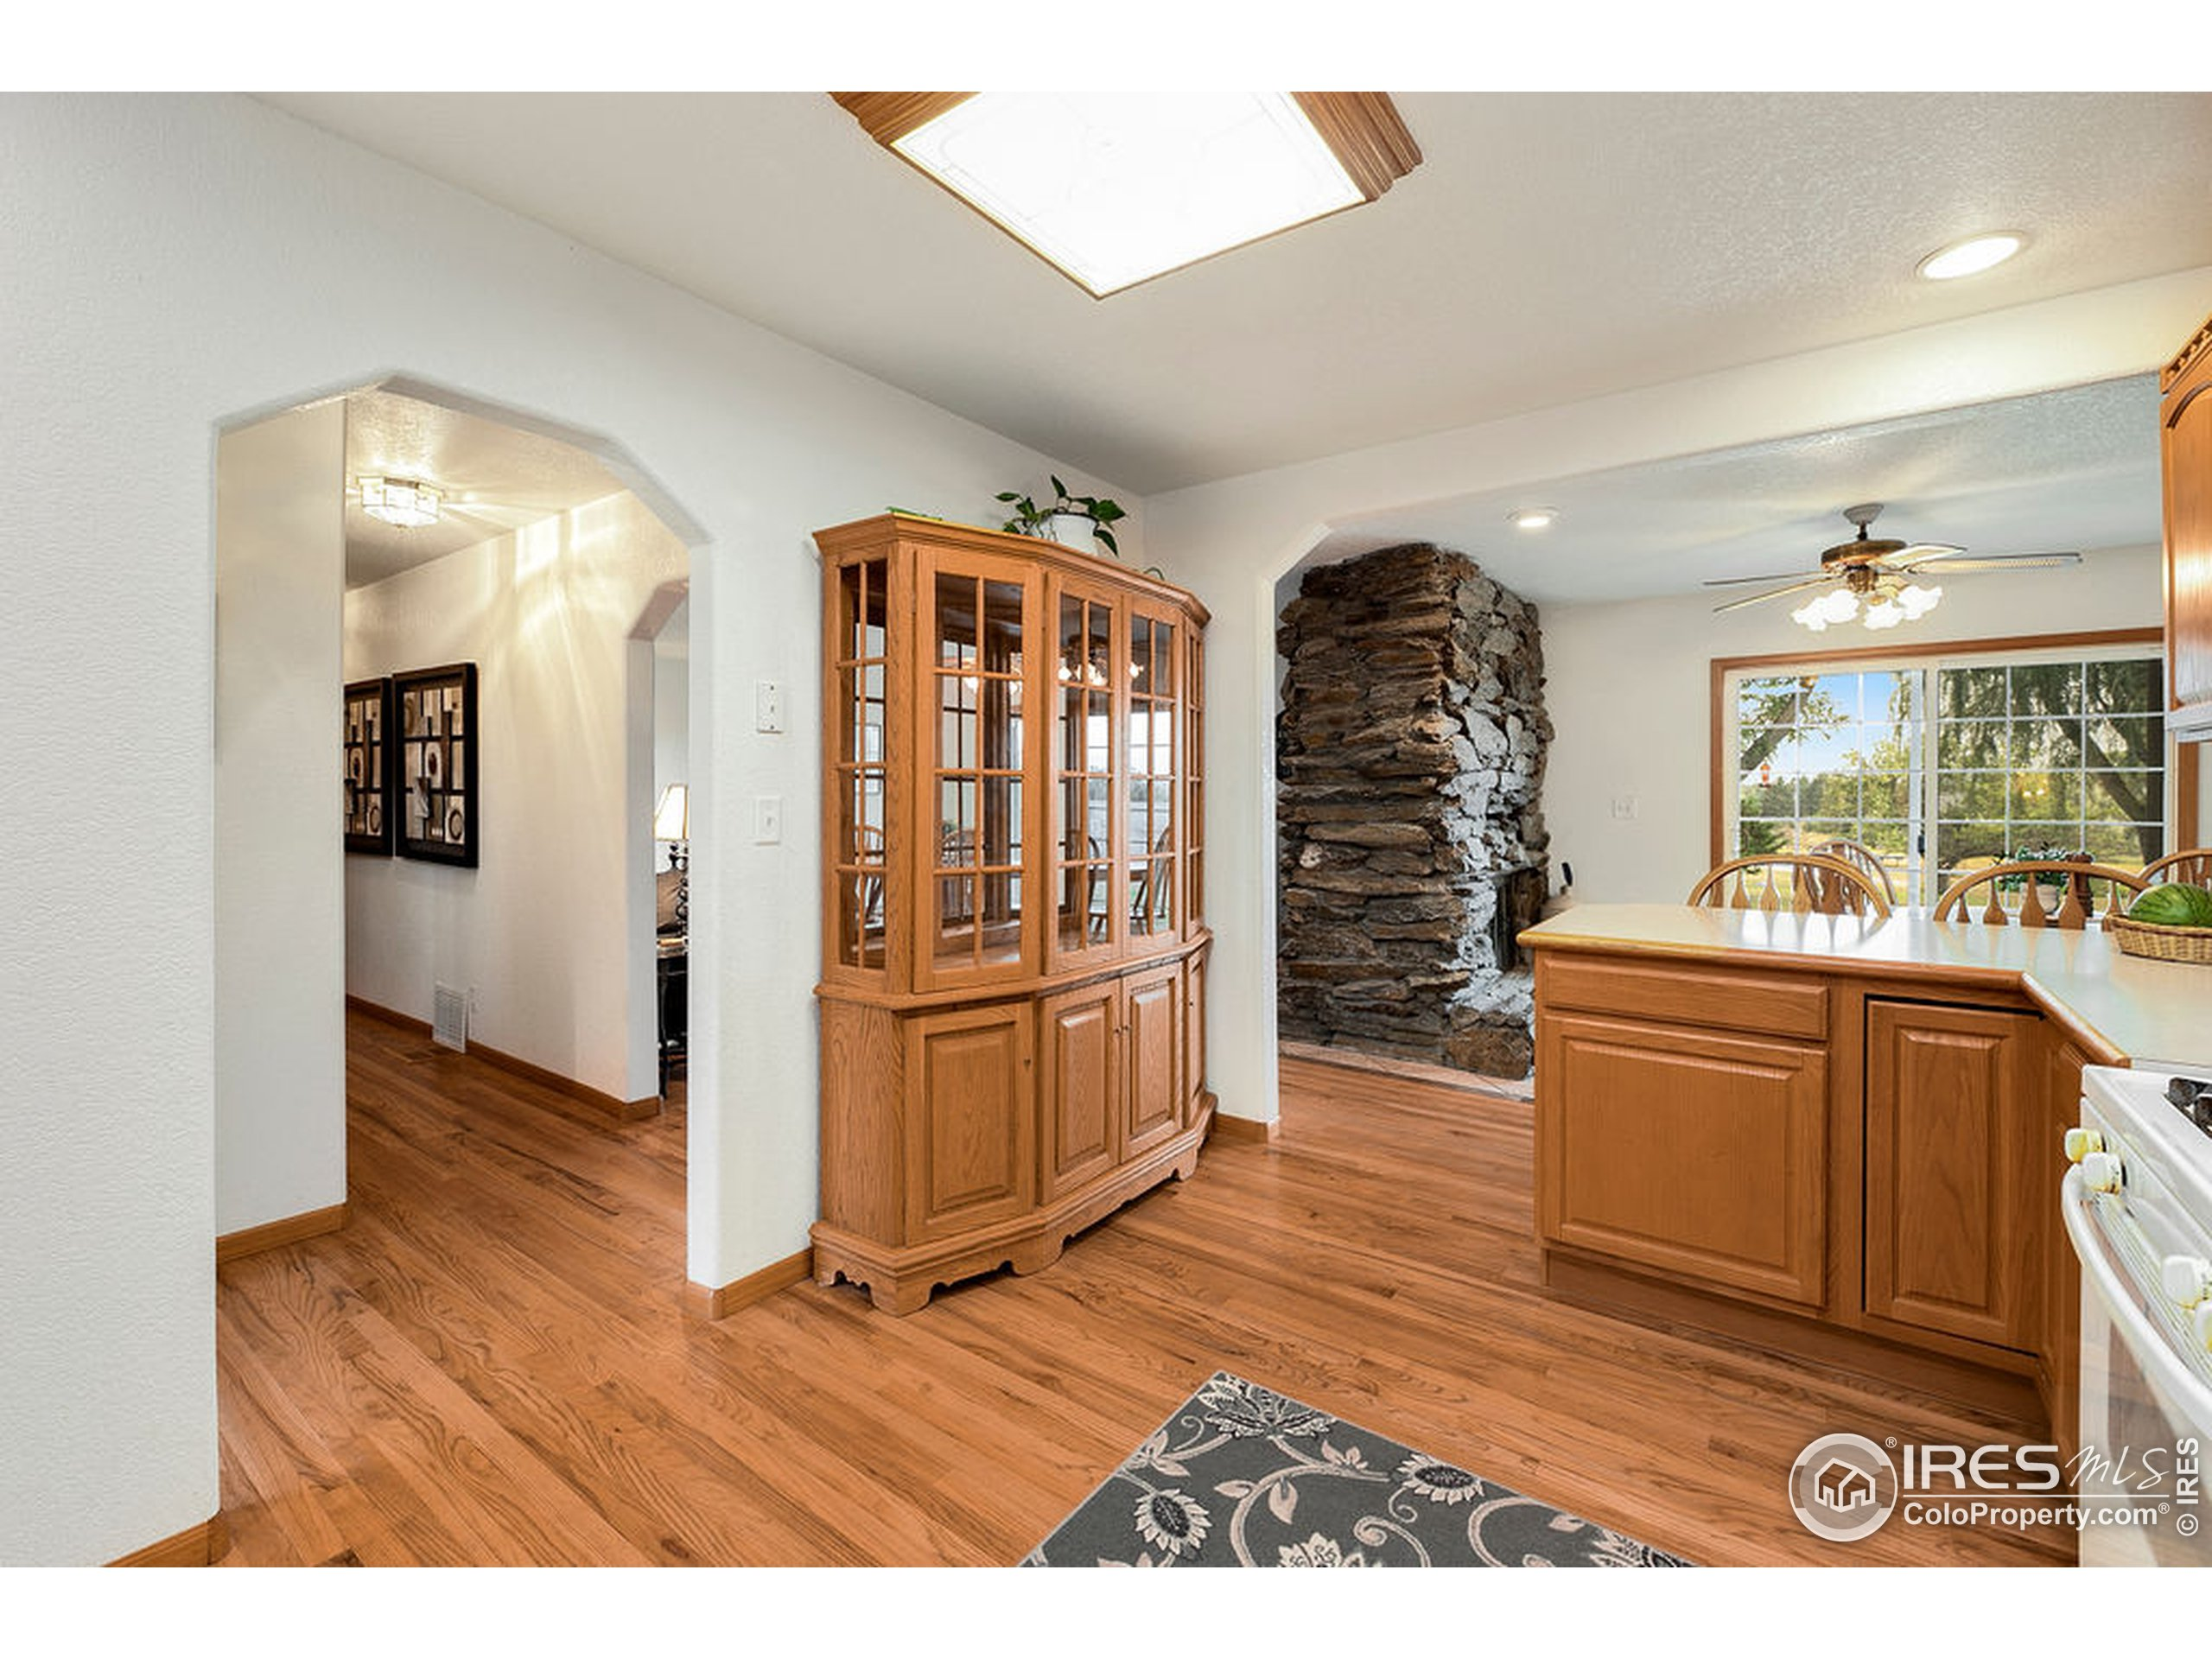 Open Layout from Kitchen to Dining Room